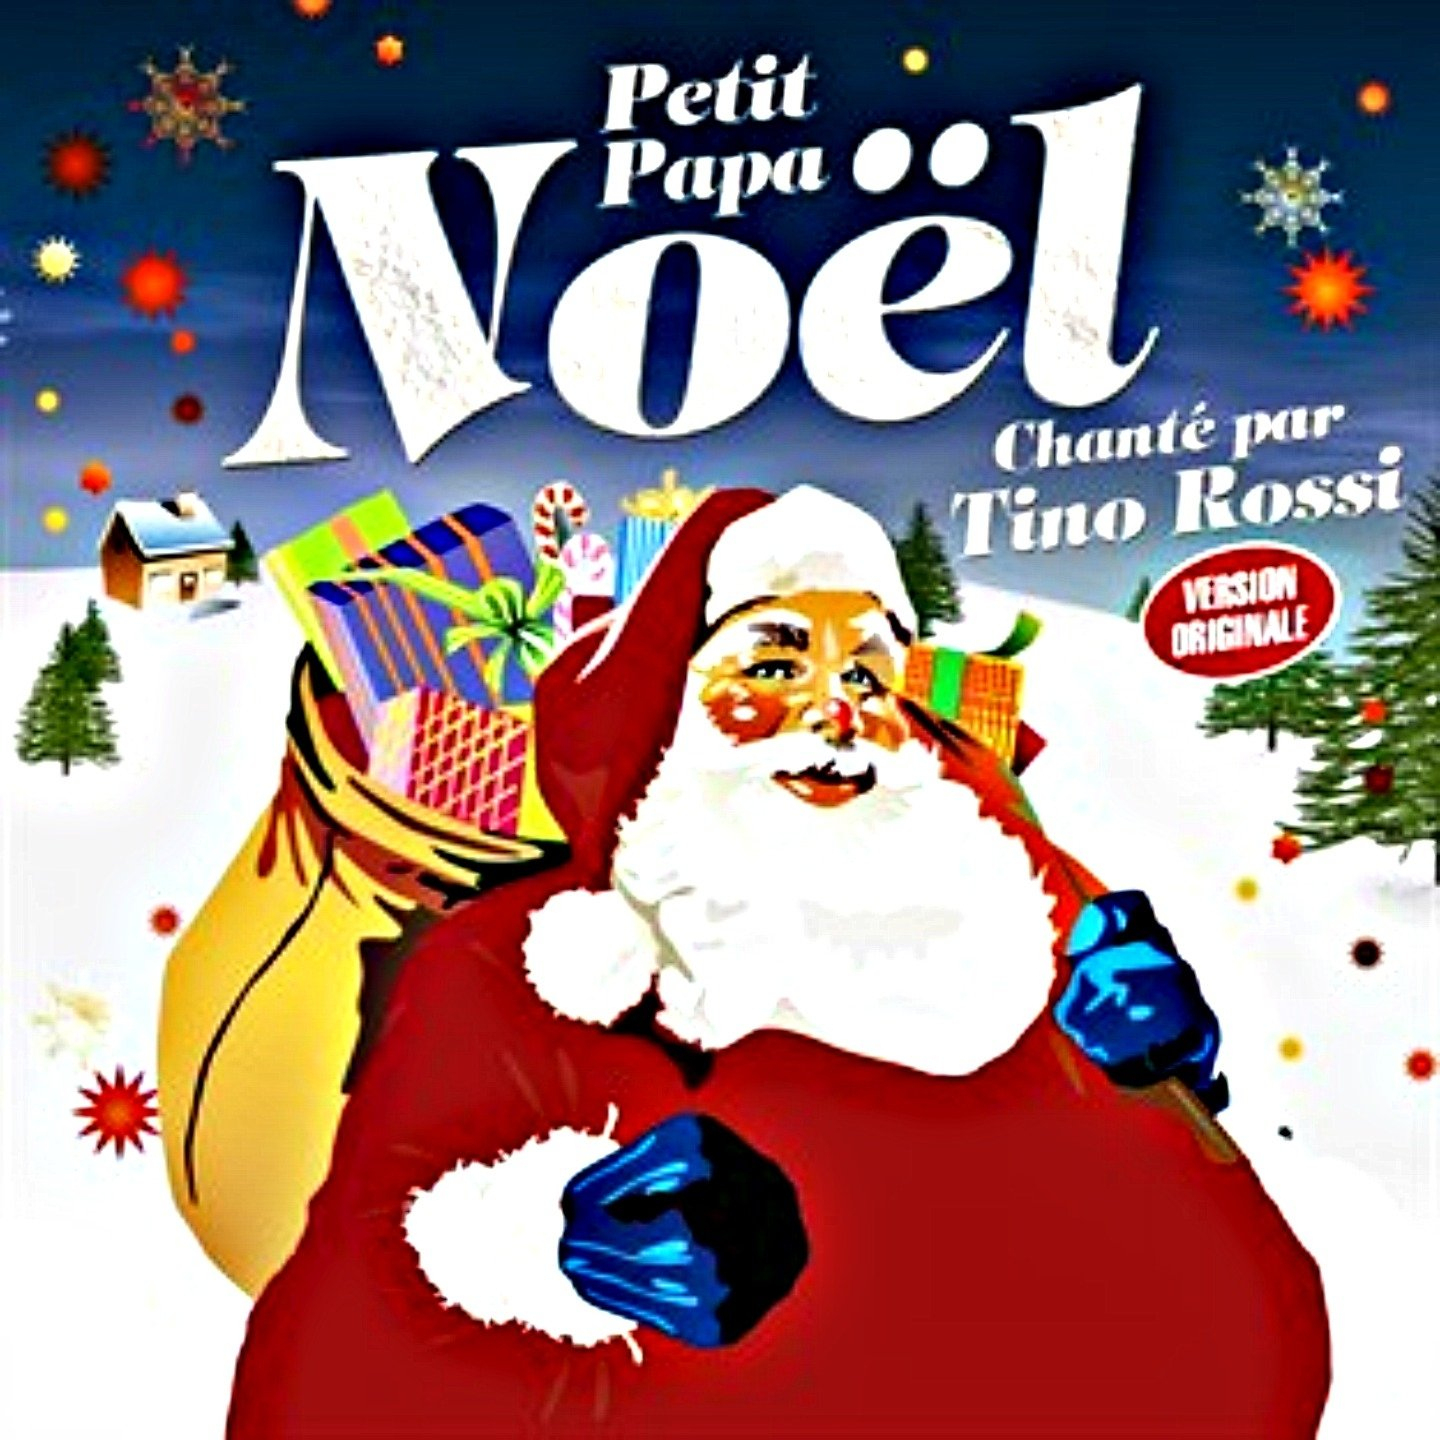 Petit Papa Noël | French Children Songs. 2019-12-27 intérieur Papa Noel Parole